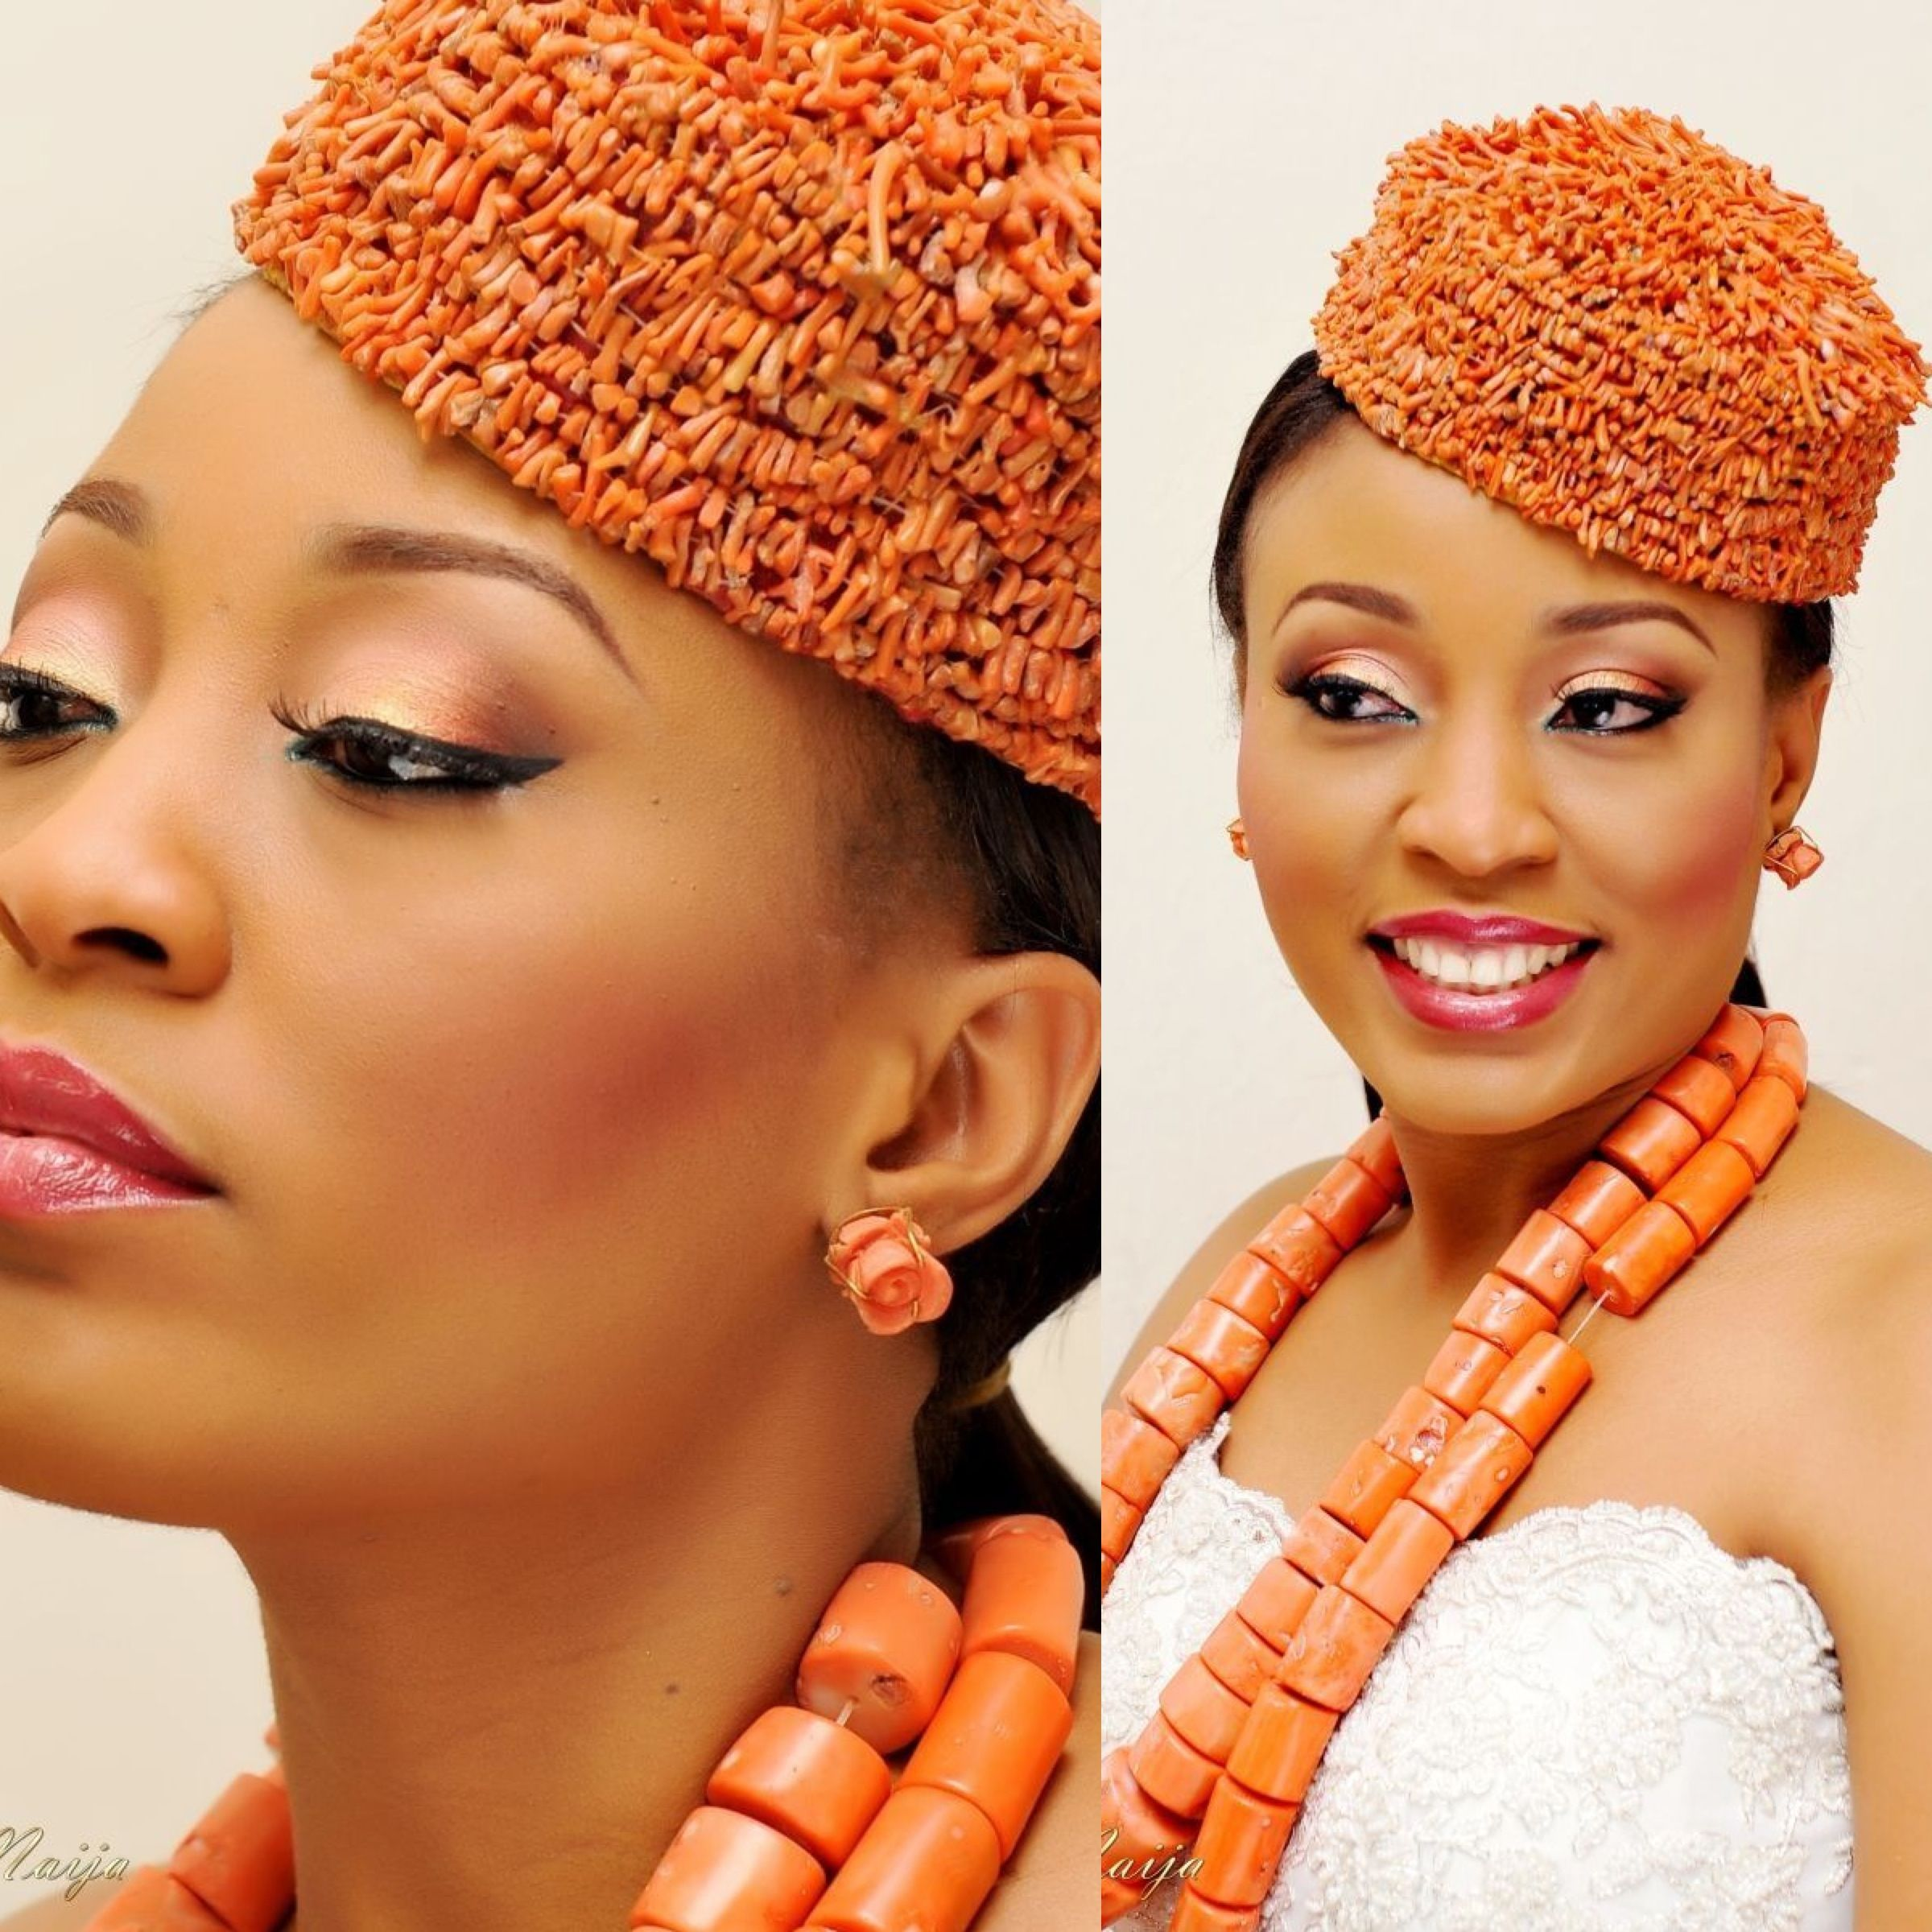 nkiru our with her traditional beads and regal makeup by bm